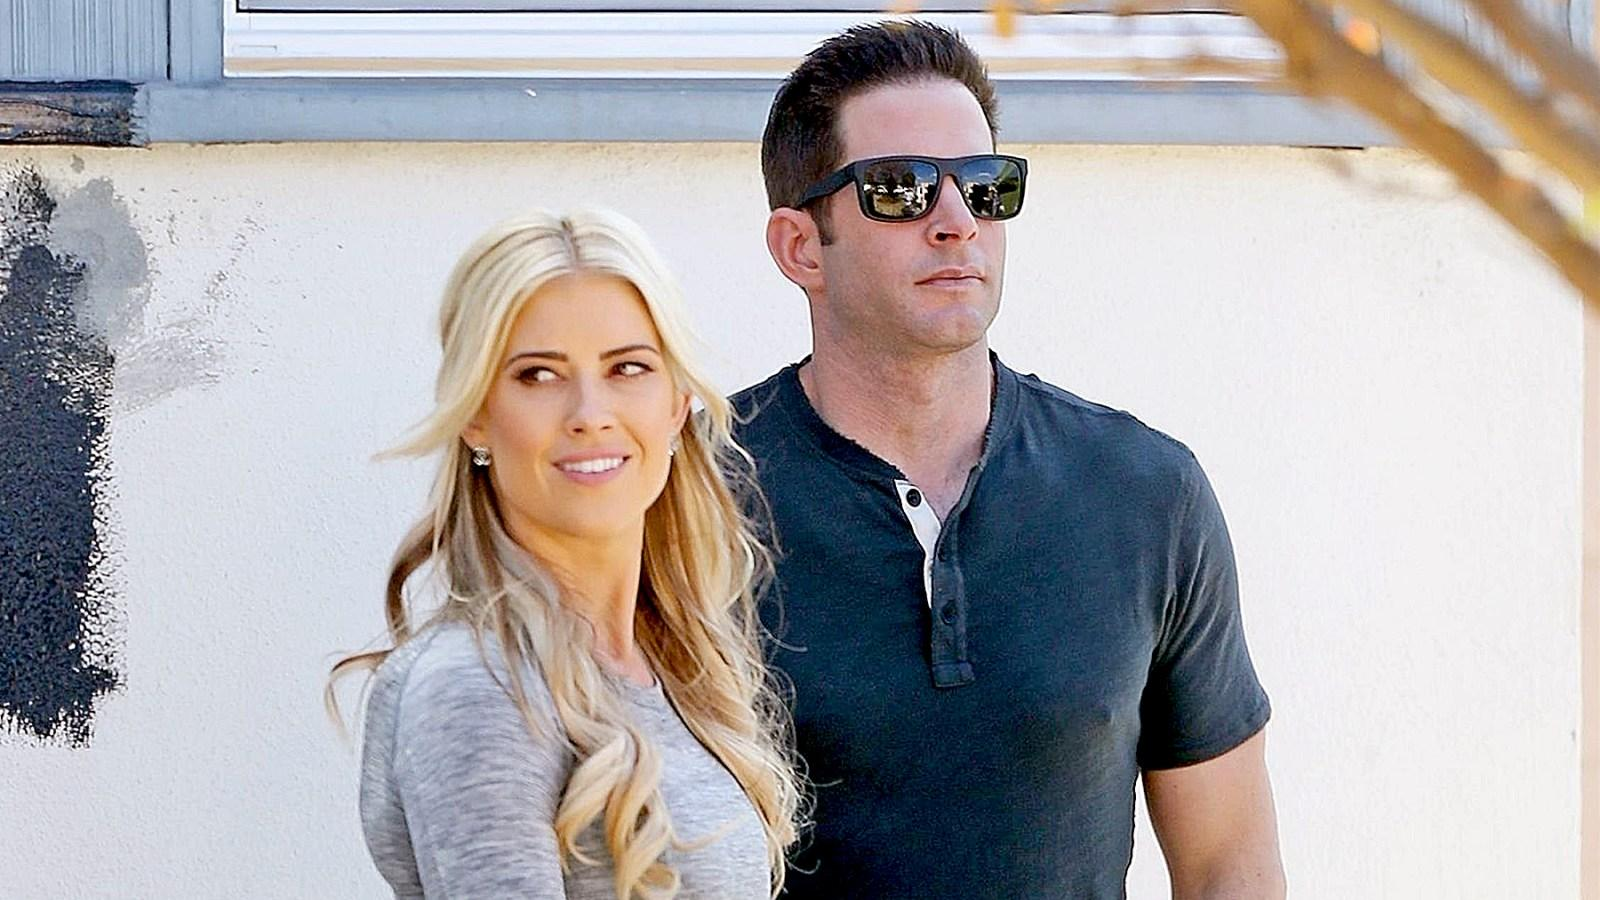 Tarek El Moussa Reportedly An Emotional Wreck After Christina's Wedding To Ant Anstead